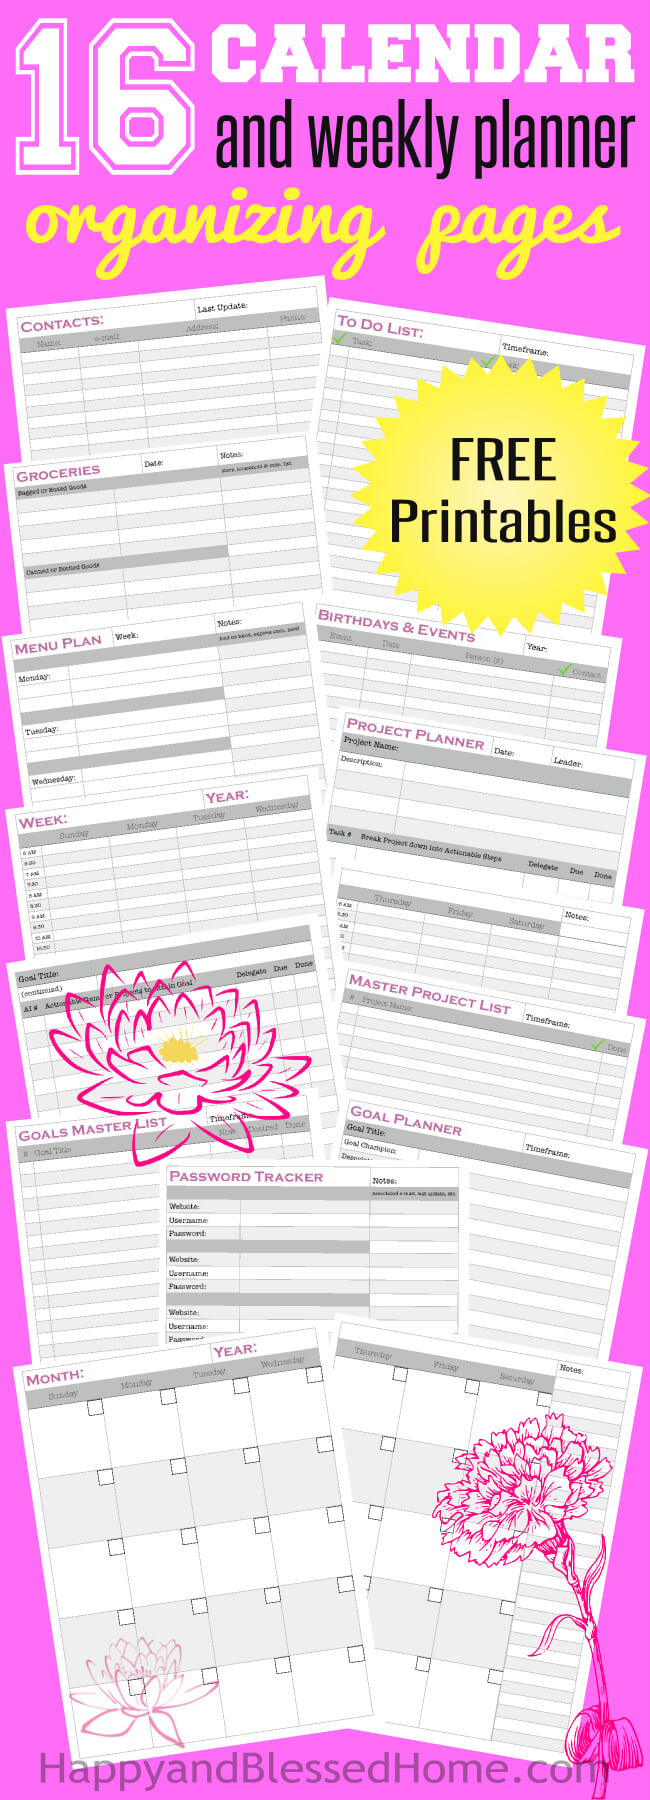 Yearly Monthly and Weekly - Everything you need in a planner plus goal setting tools and project plans from HappyandBlessedHome